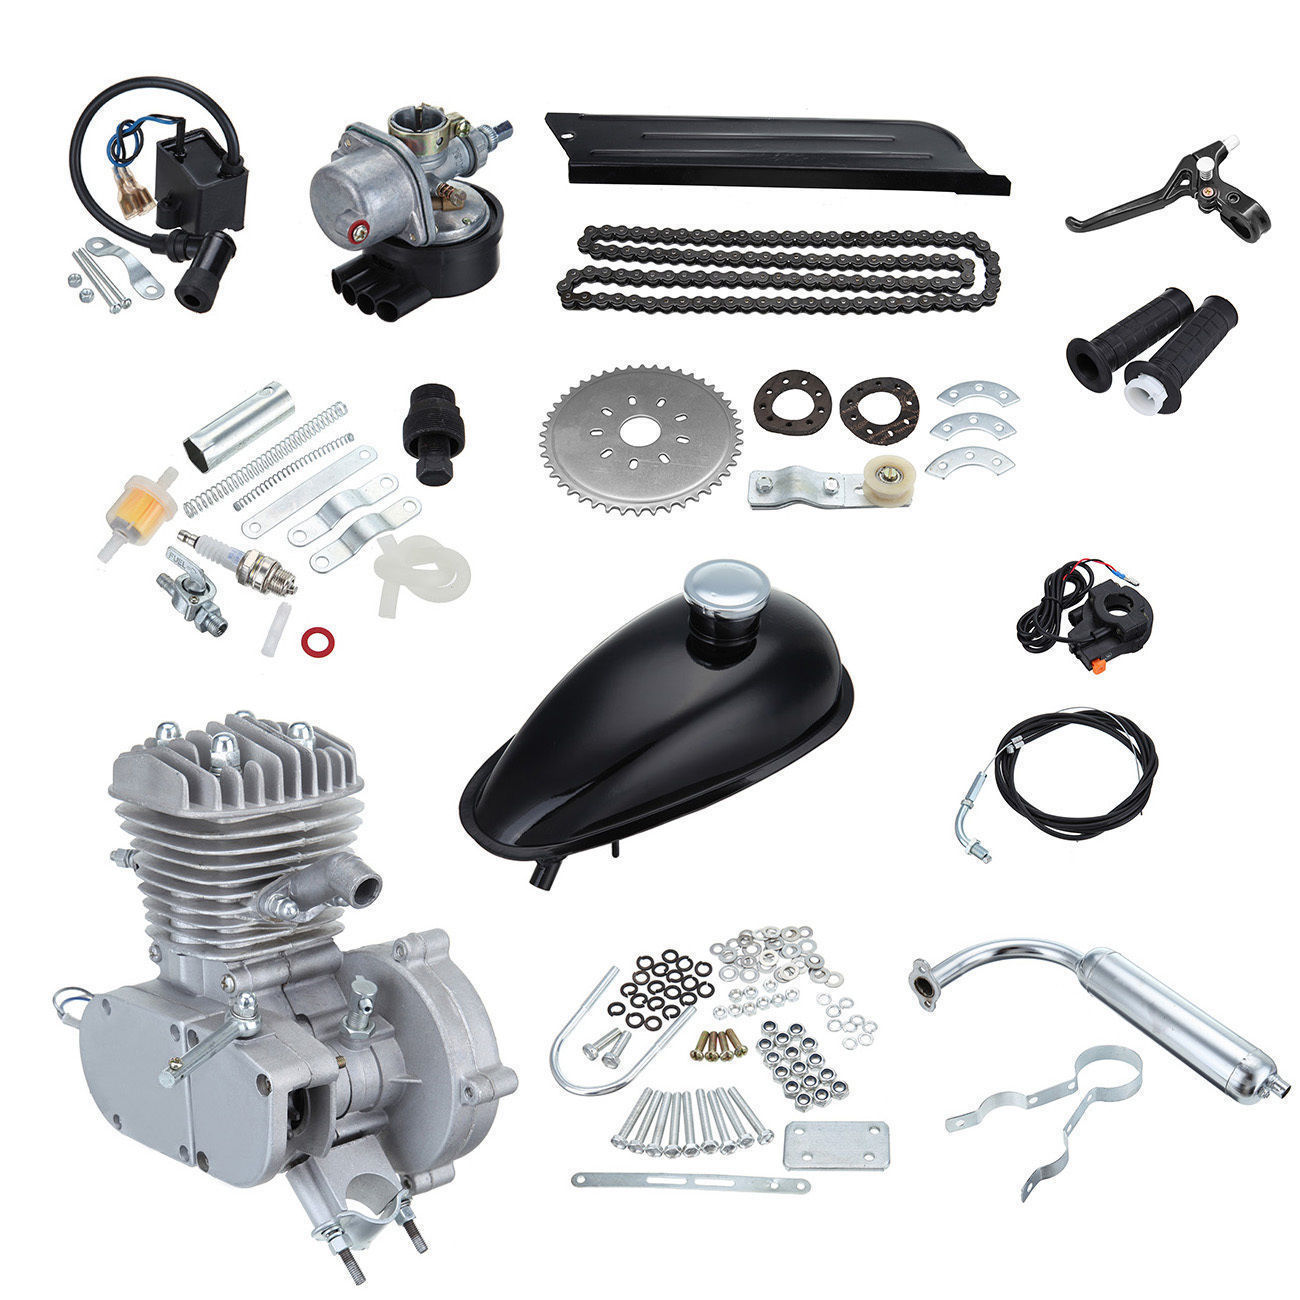 Motorcycle Engine Kits : Cc stroke engine complete kits for gas motorized cycle